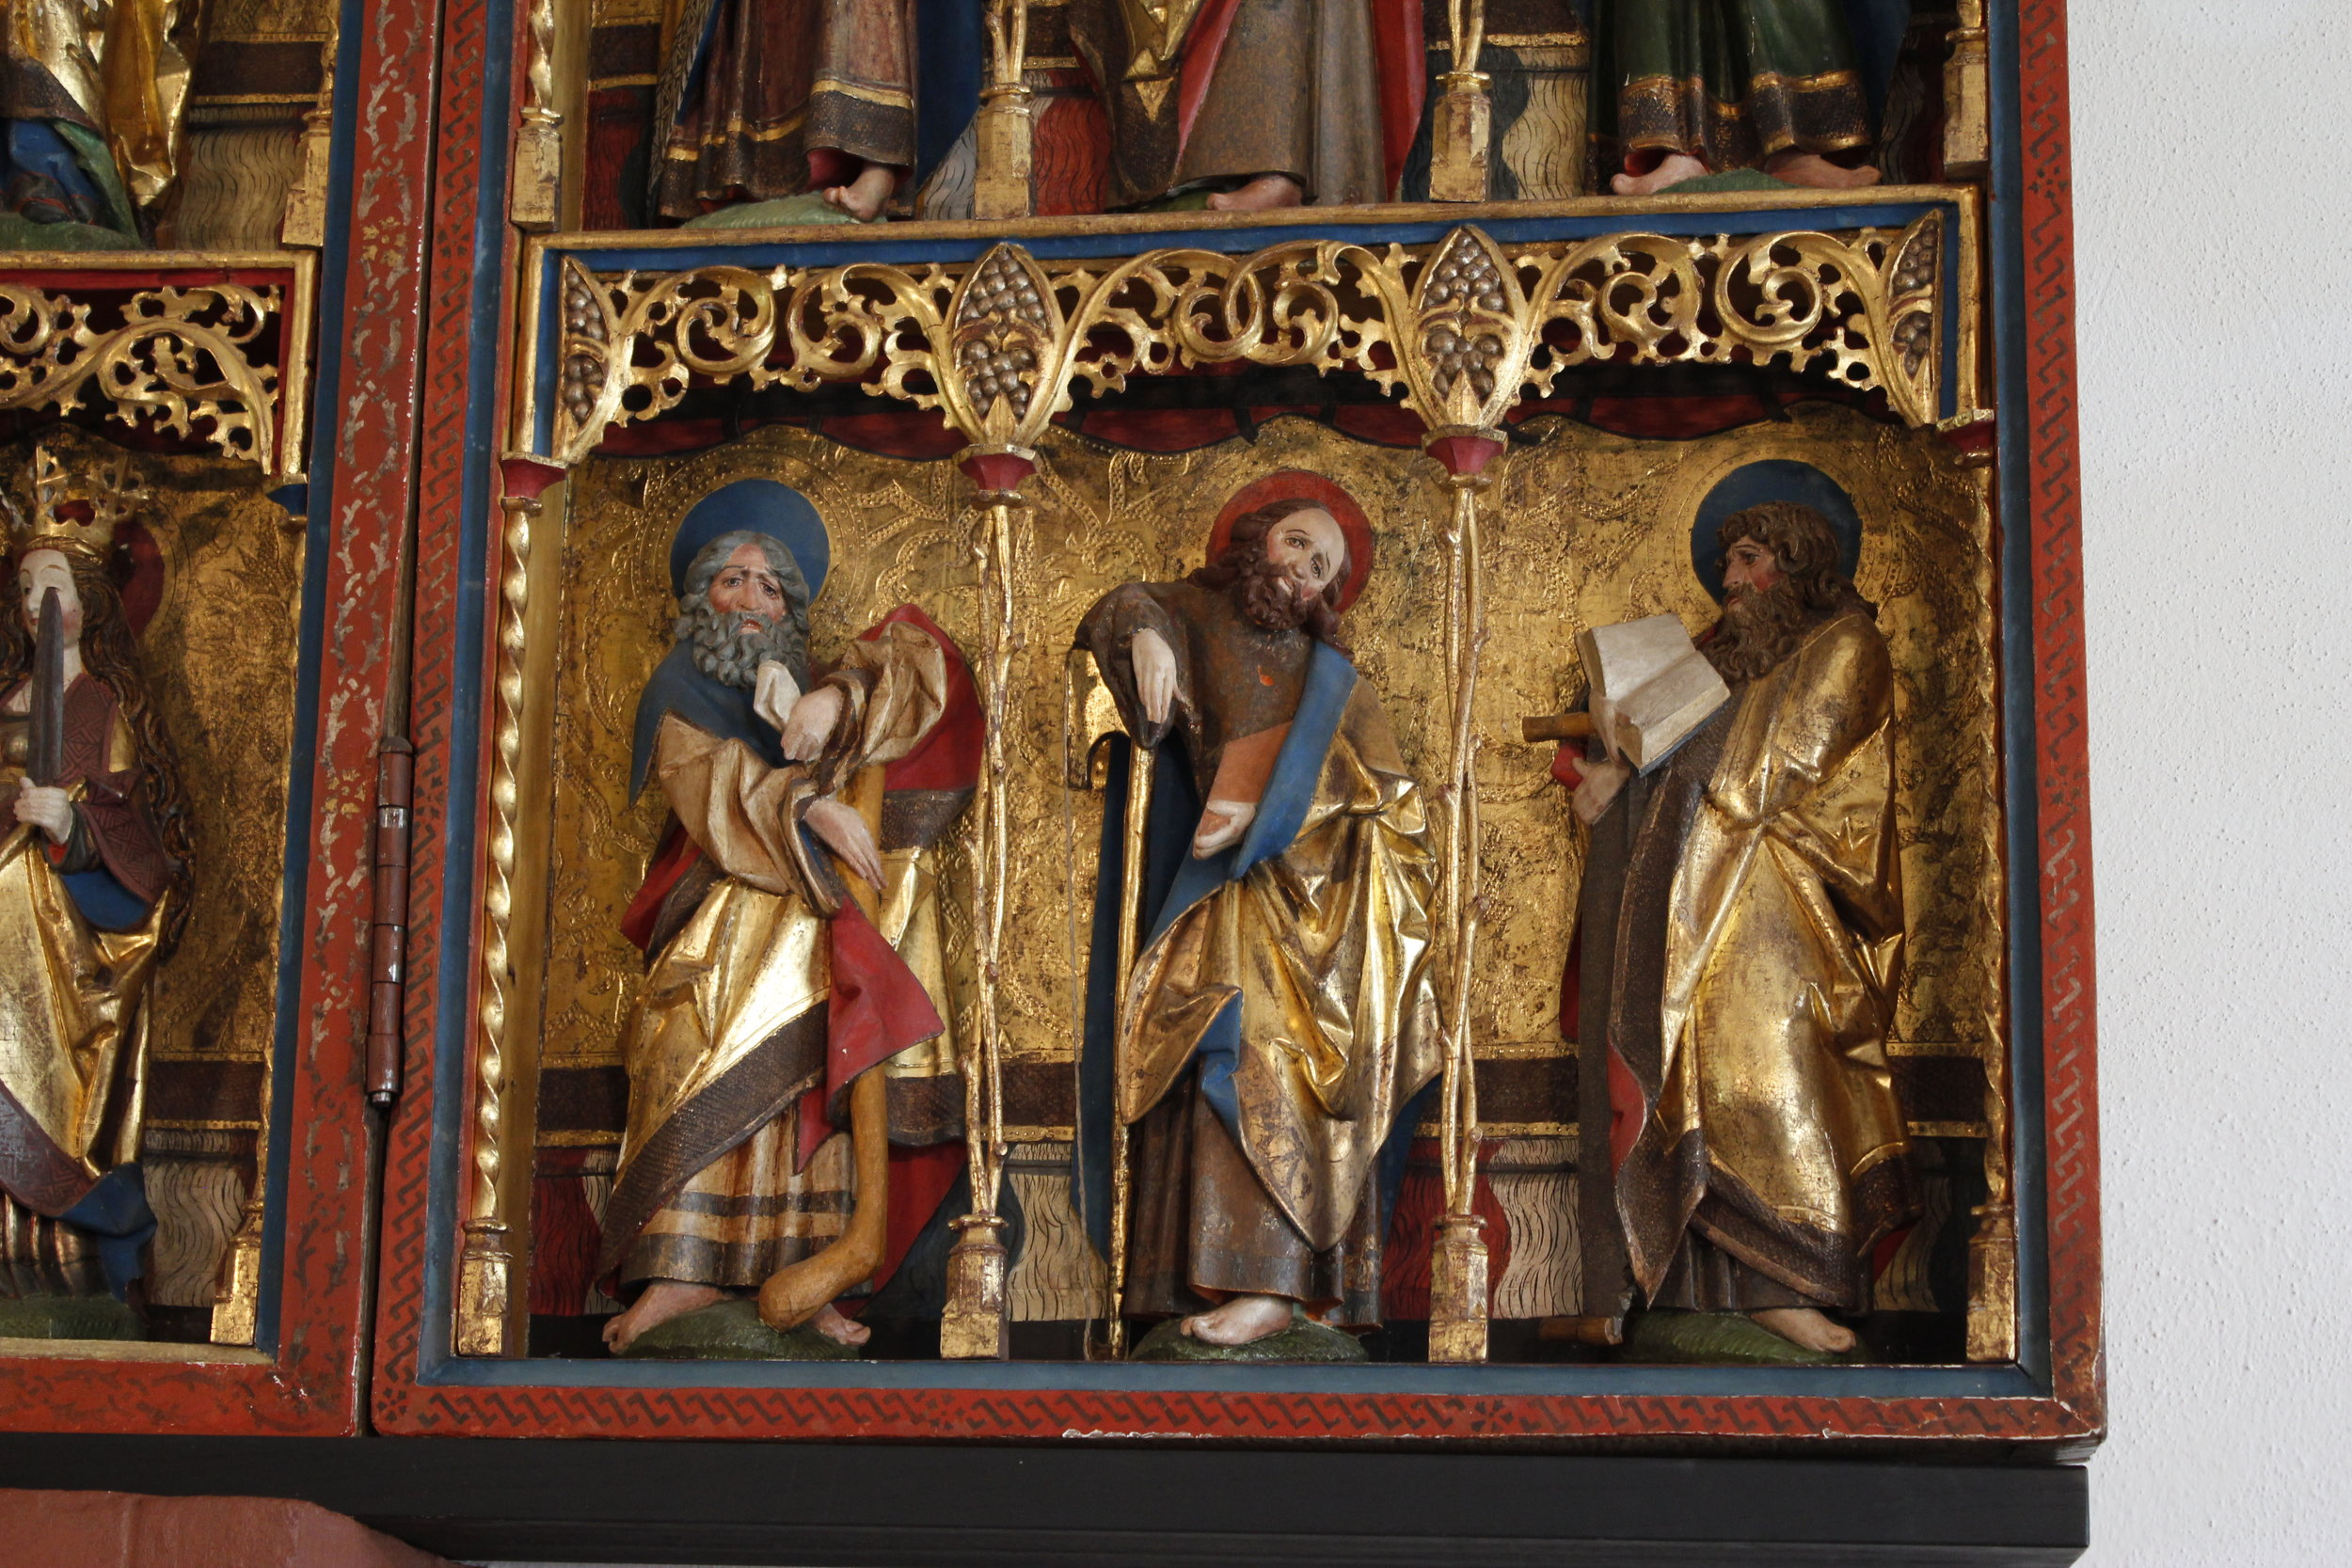 Detail from the altarpiece in the Cathedral, dating back from the early 16th Century.